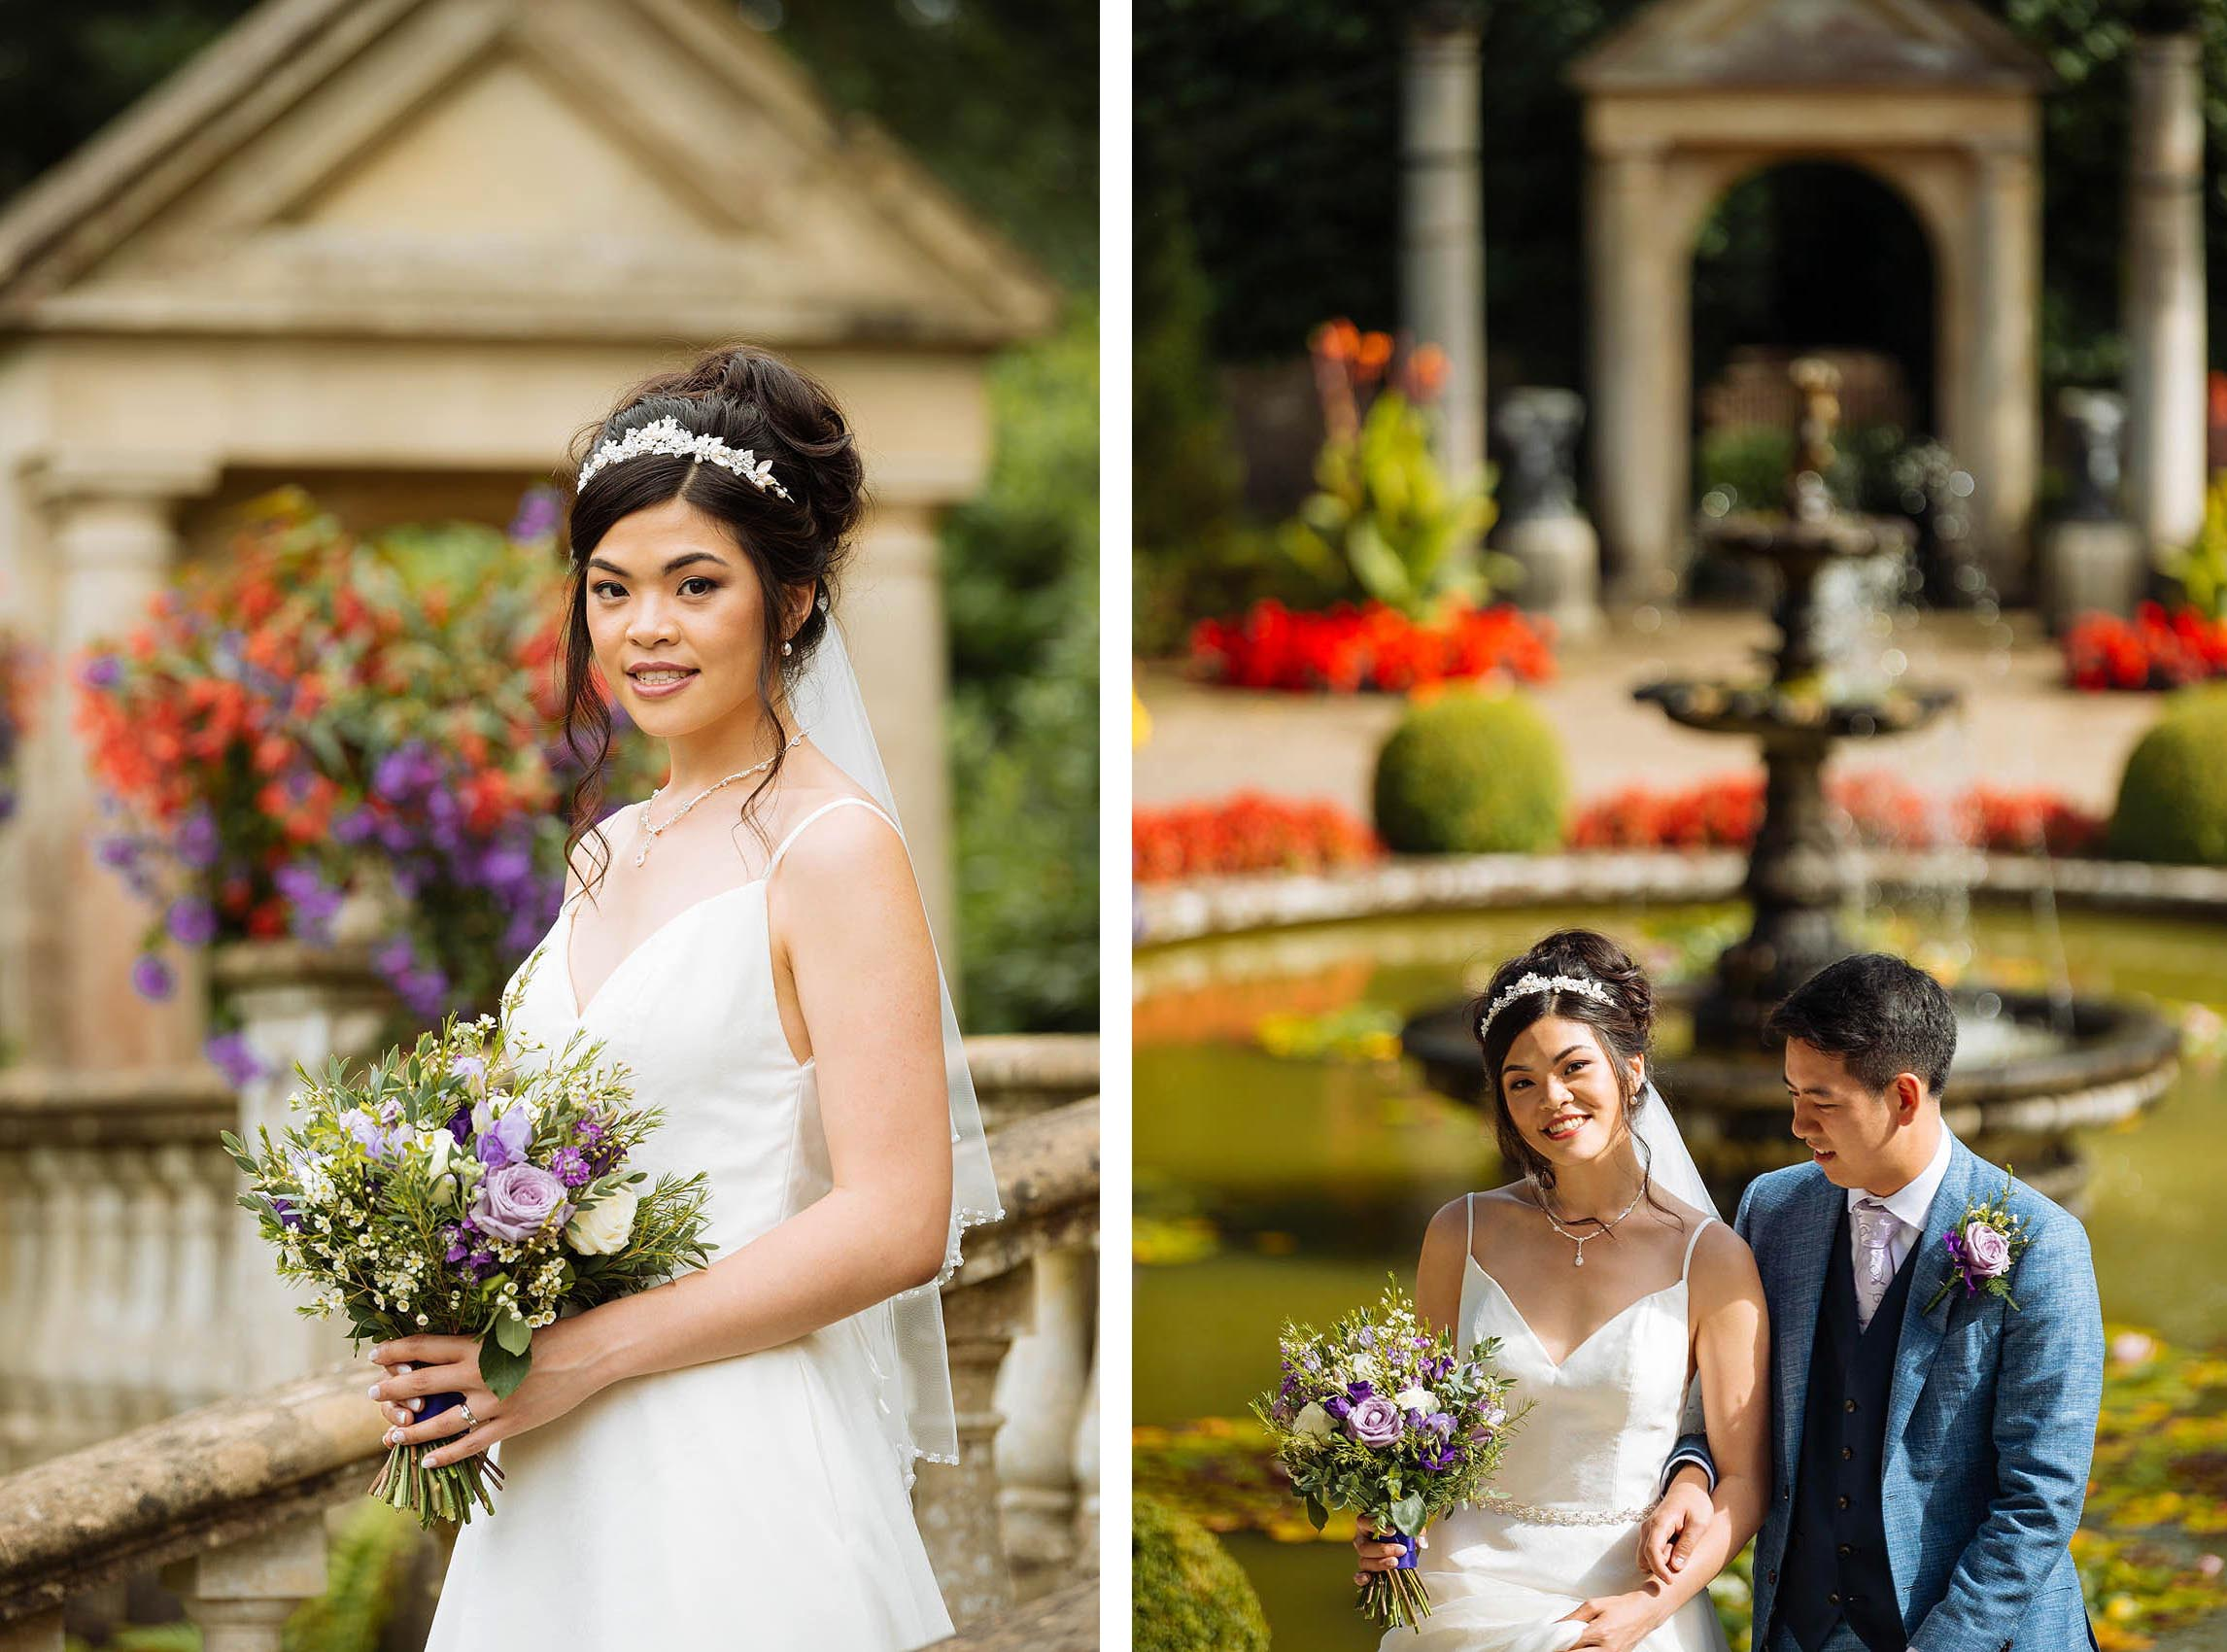 bride-groom-portrait-italian-villa-gardens-natural-dorset-wedding-photographer